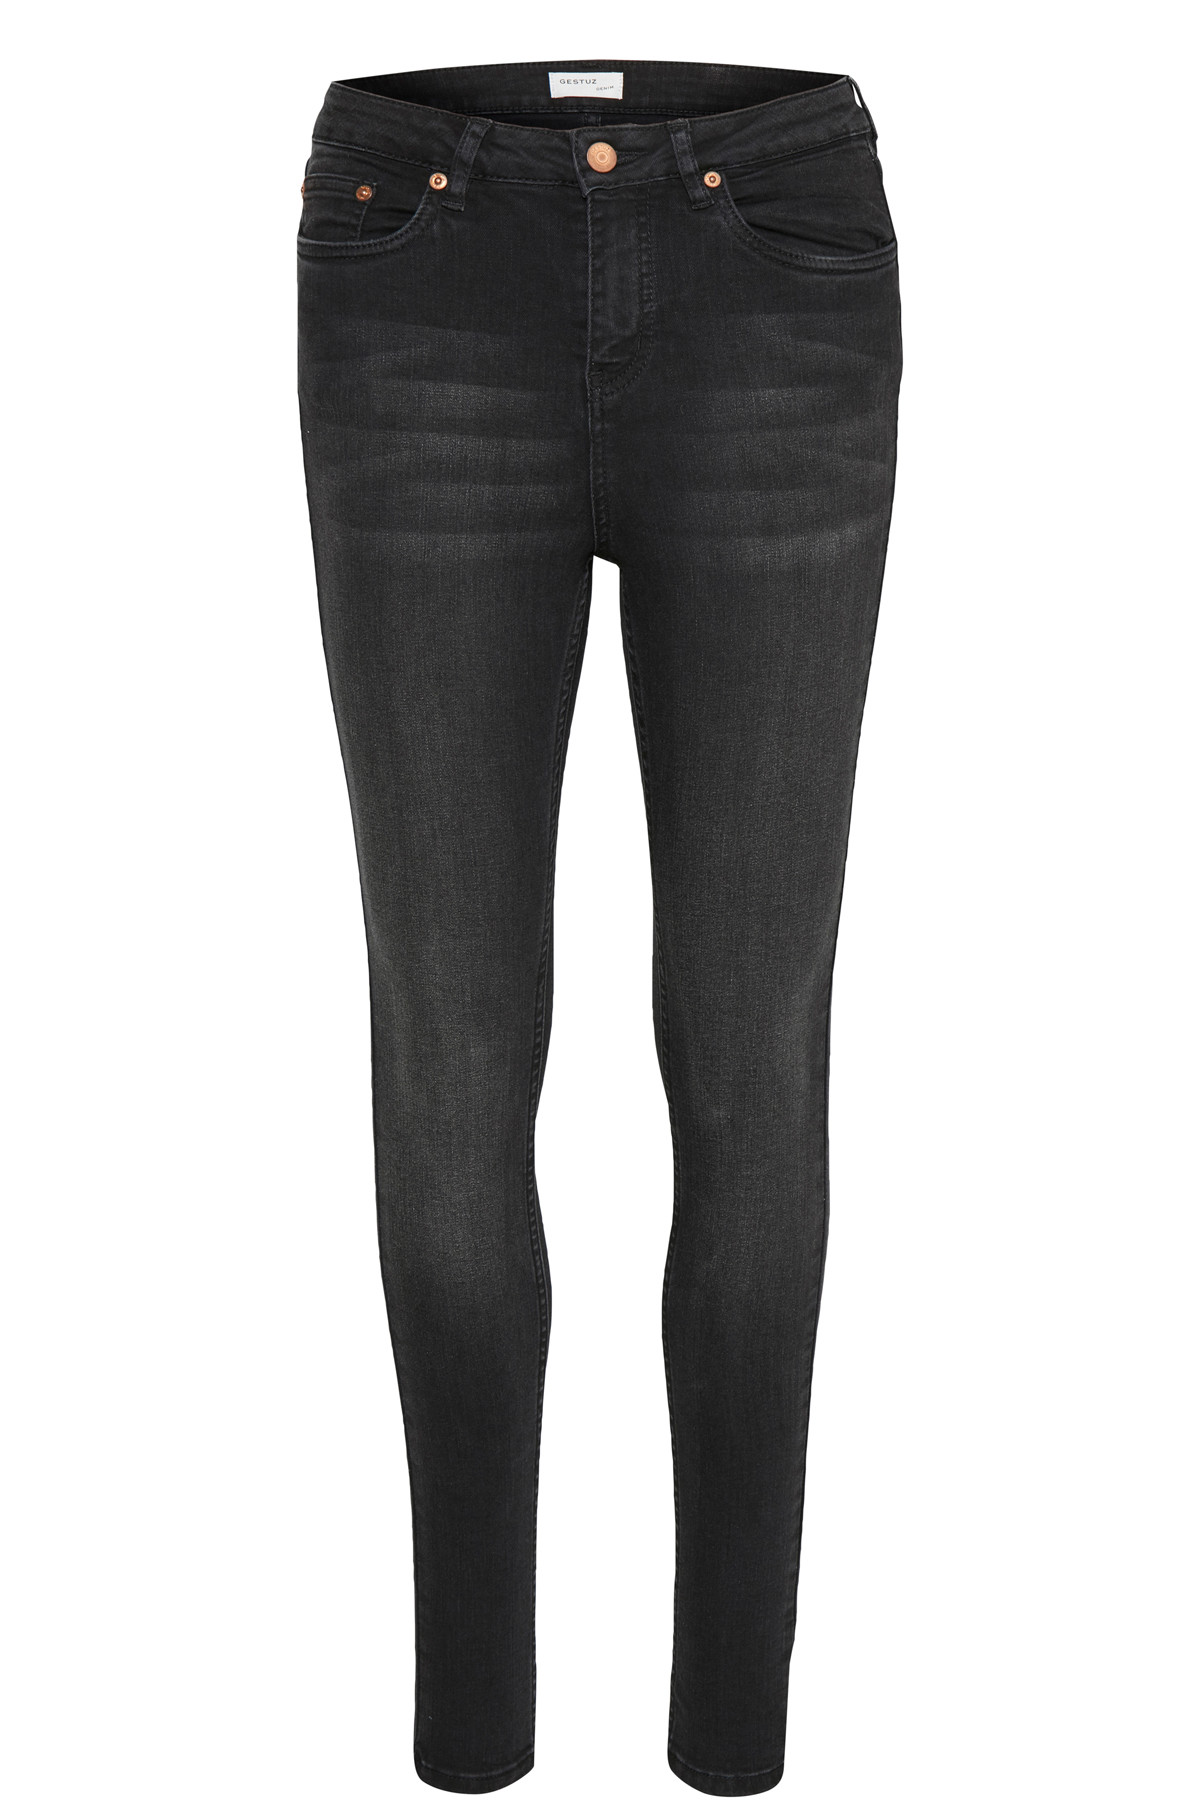 "Image of   GESTUZ EMILY JEANS 10900068 (Charcoal Grey 90899, ""32"", 30)"